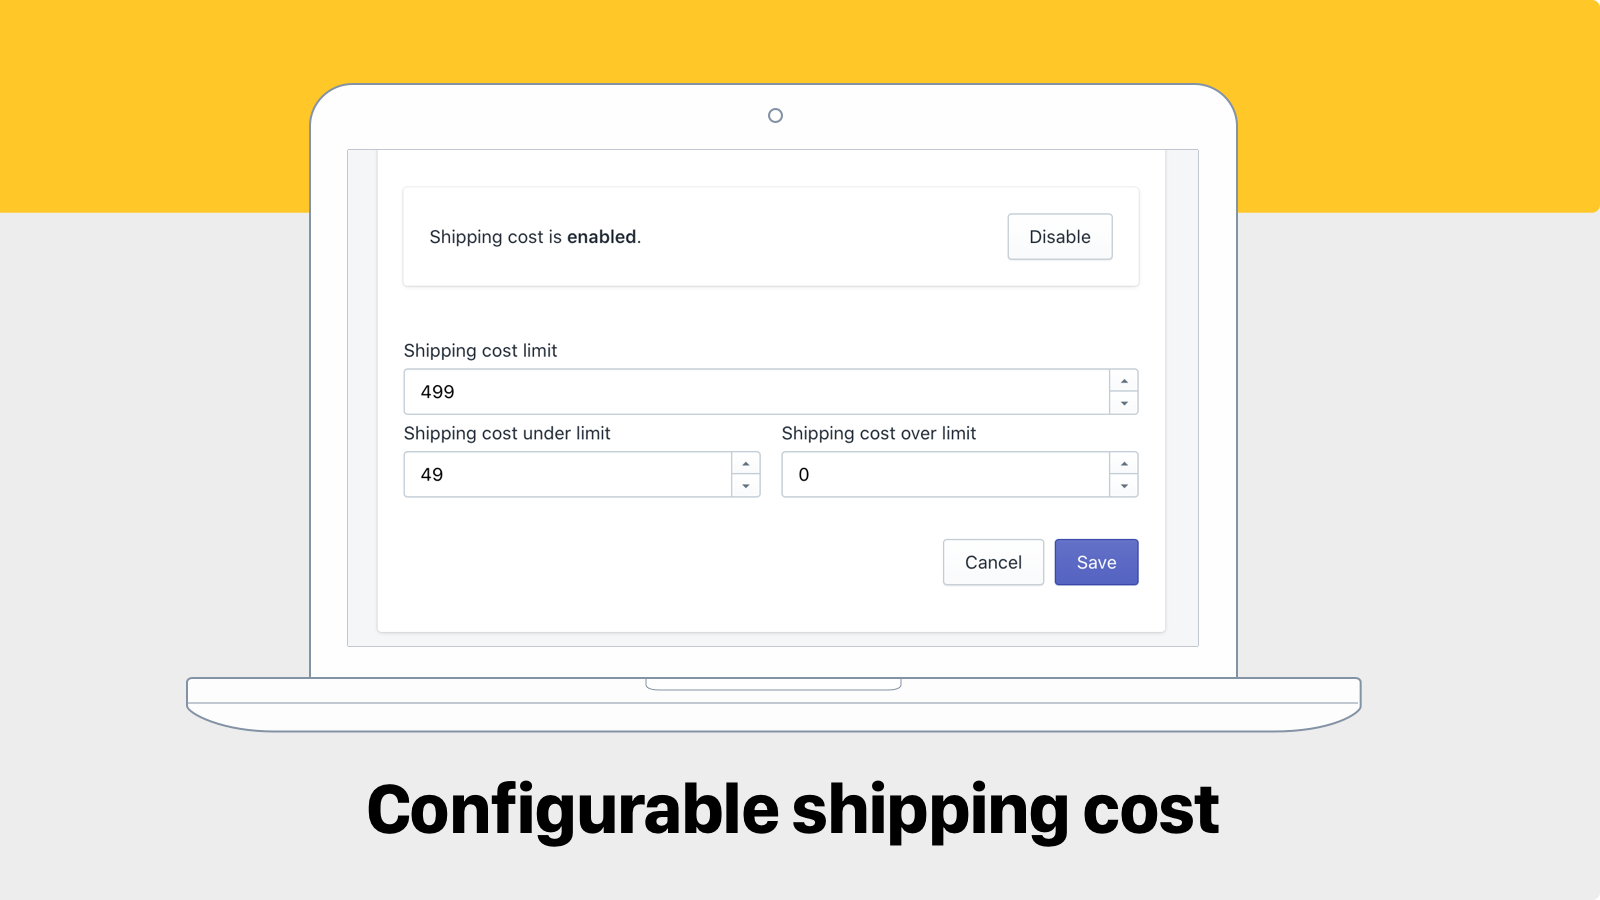 Configurable shipping cost